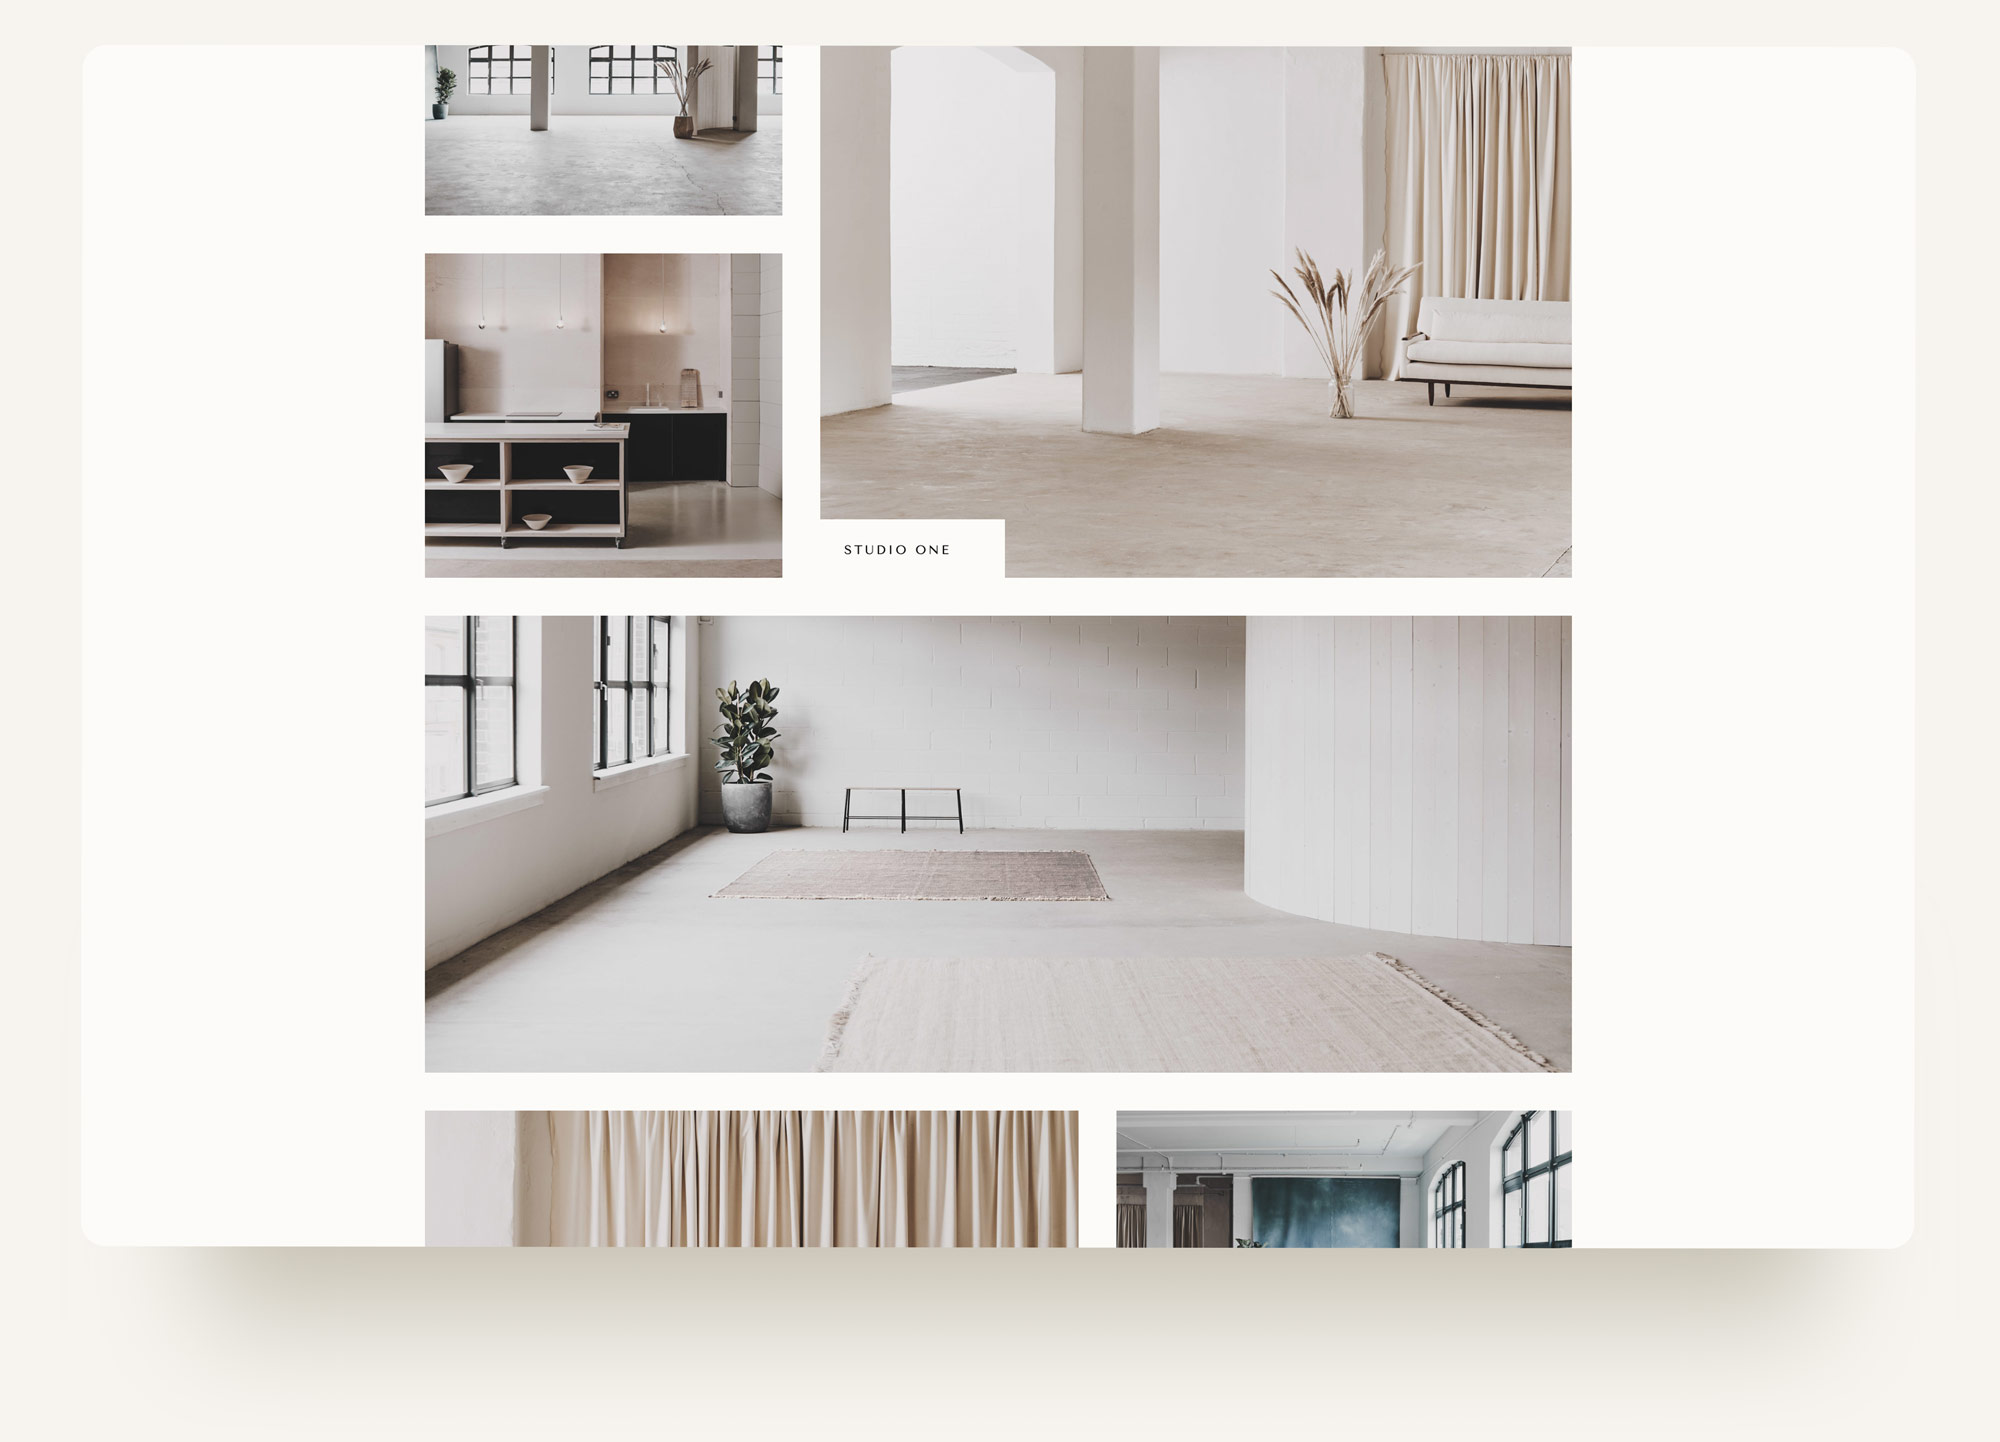 Image gallery with rollover captions for popup photography studio Archway Depot on Squarespace. web design by Brittany Hurdle beckon webeckon